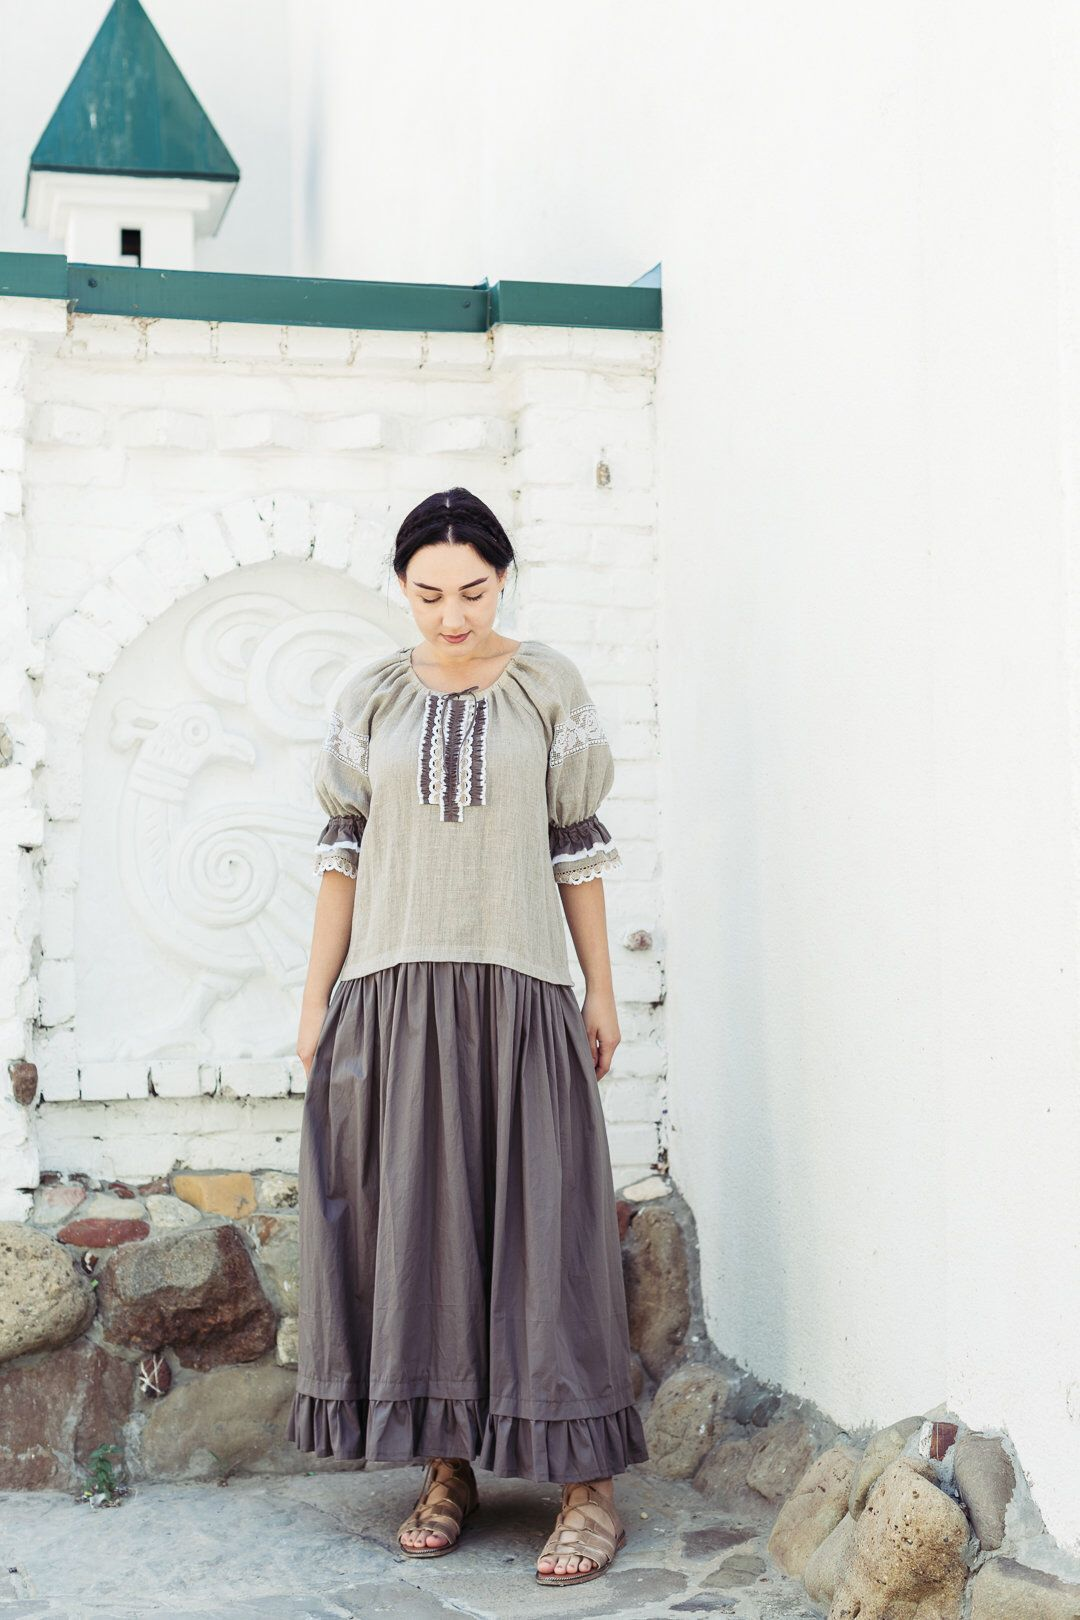 dd8a853b2 Bohemian embroidered linen dress/Eco clothing from natural materials/Rustic  wedding #clothing #women #dress #gray #blouson #no #aline #crew #34sleeve